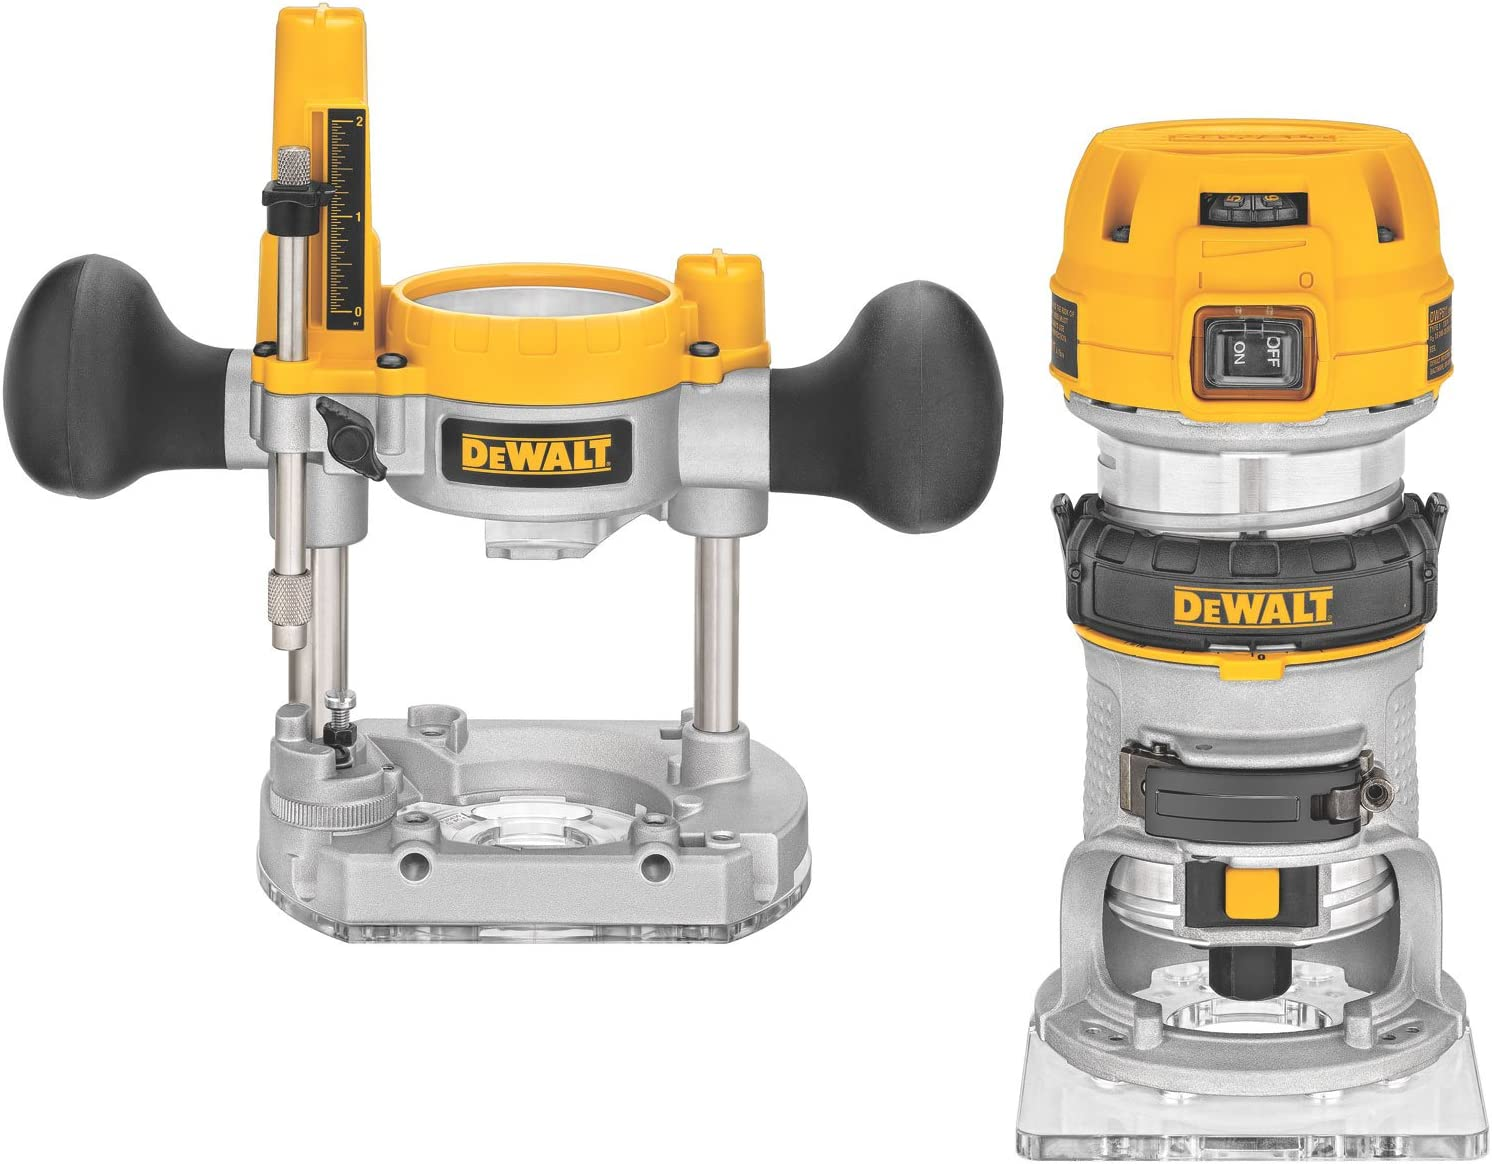 Toolstoday DEWALT Wood Router